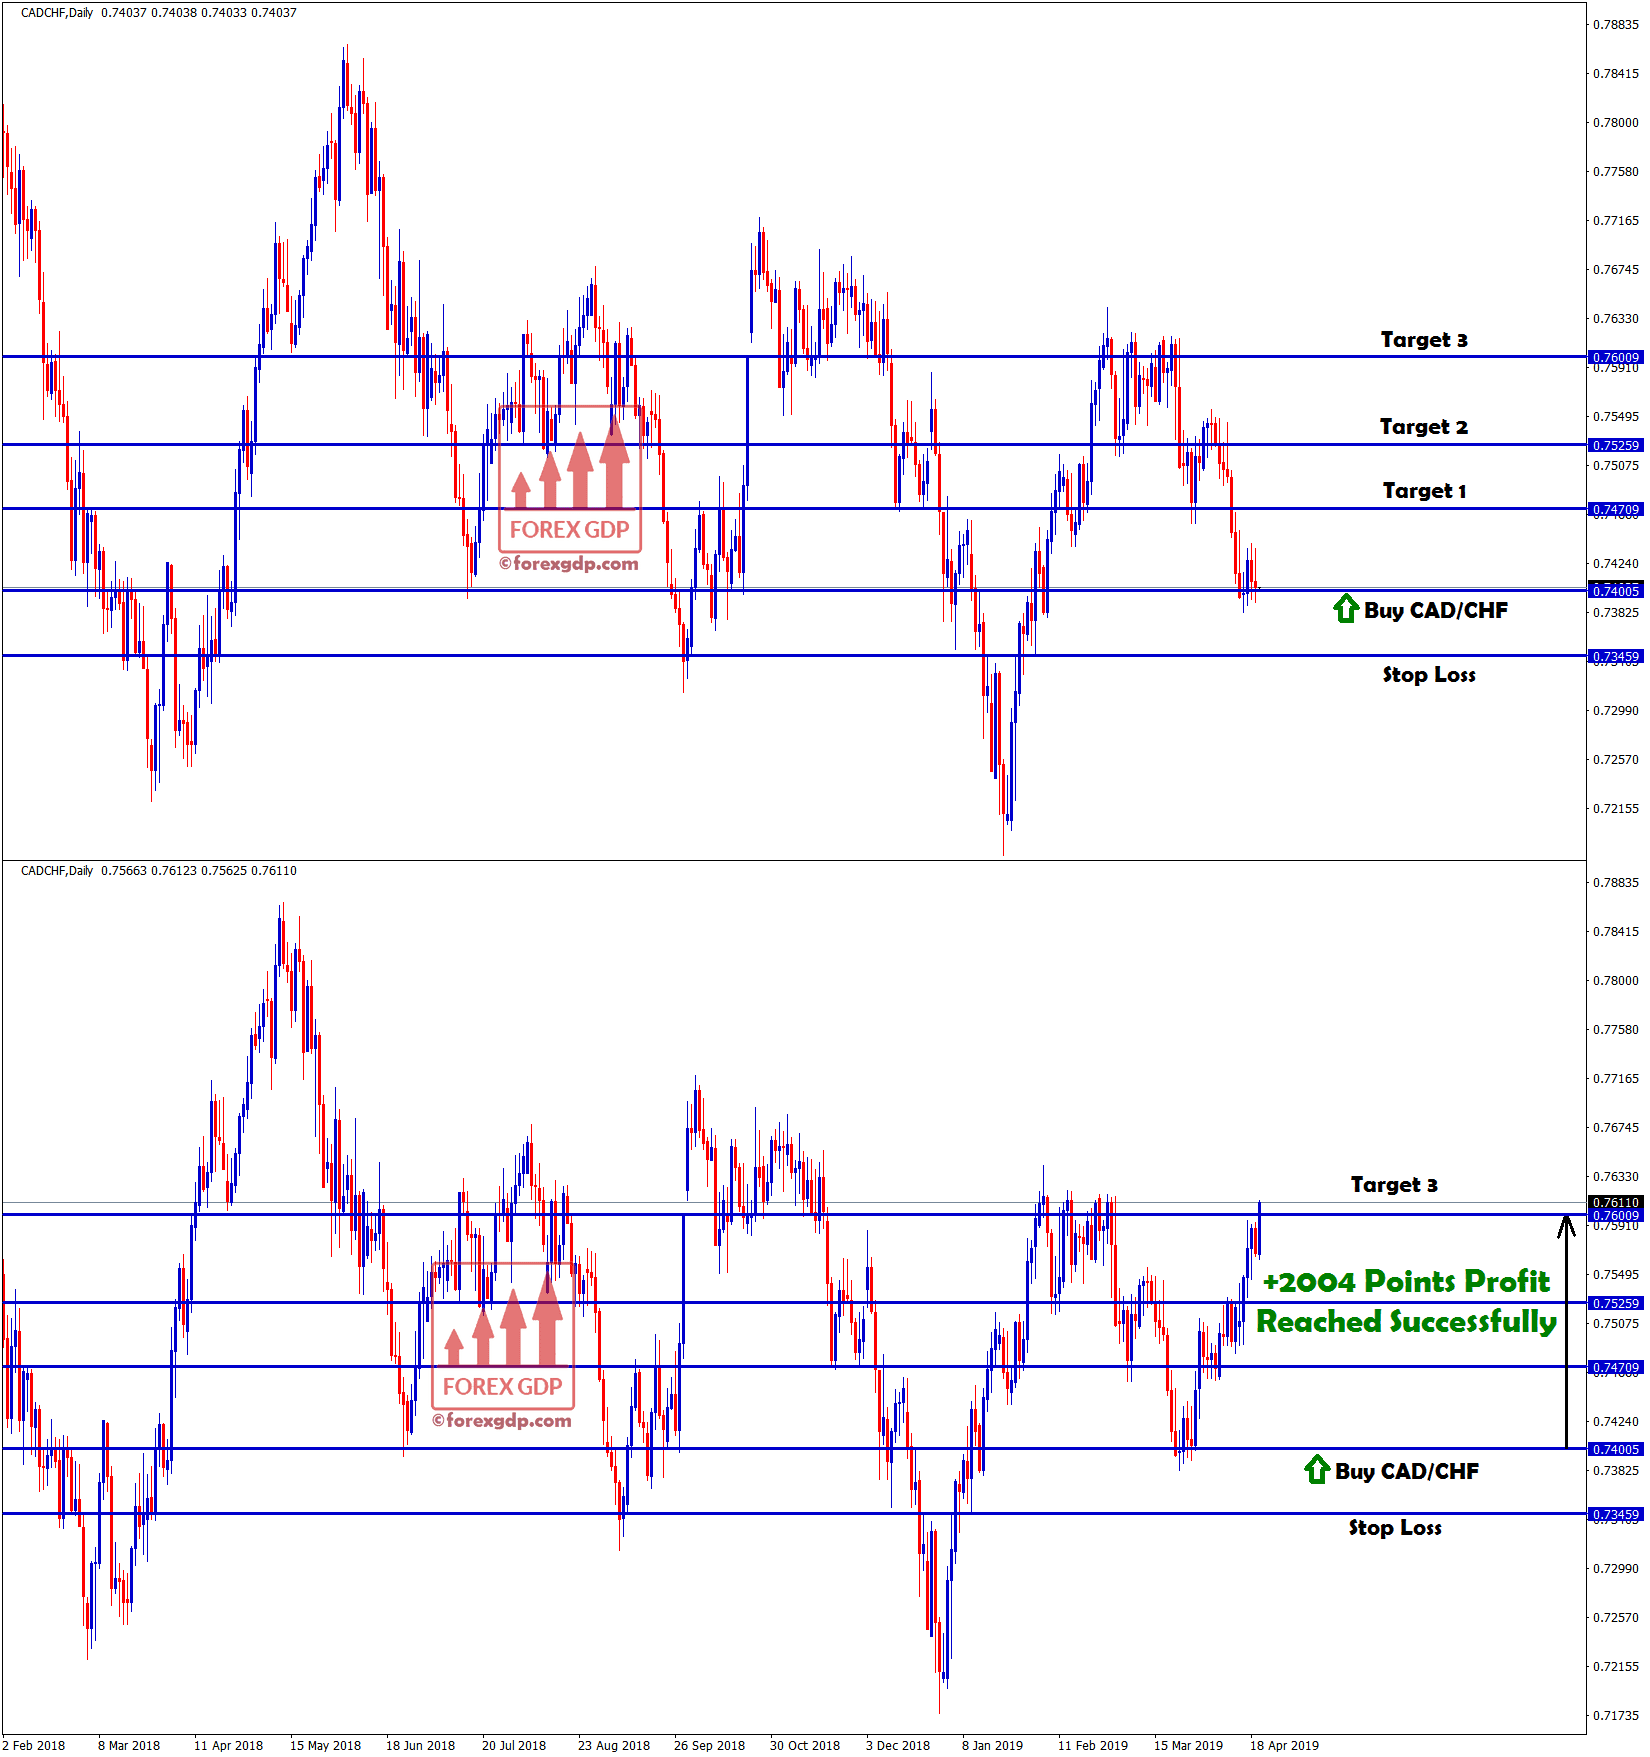 target 3 hits in cad/chf with +2004 points profit